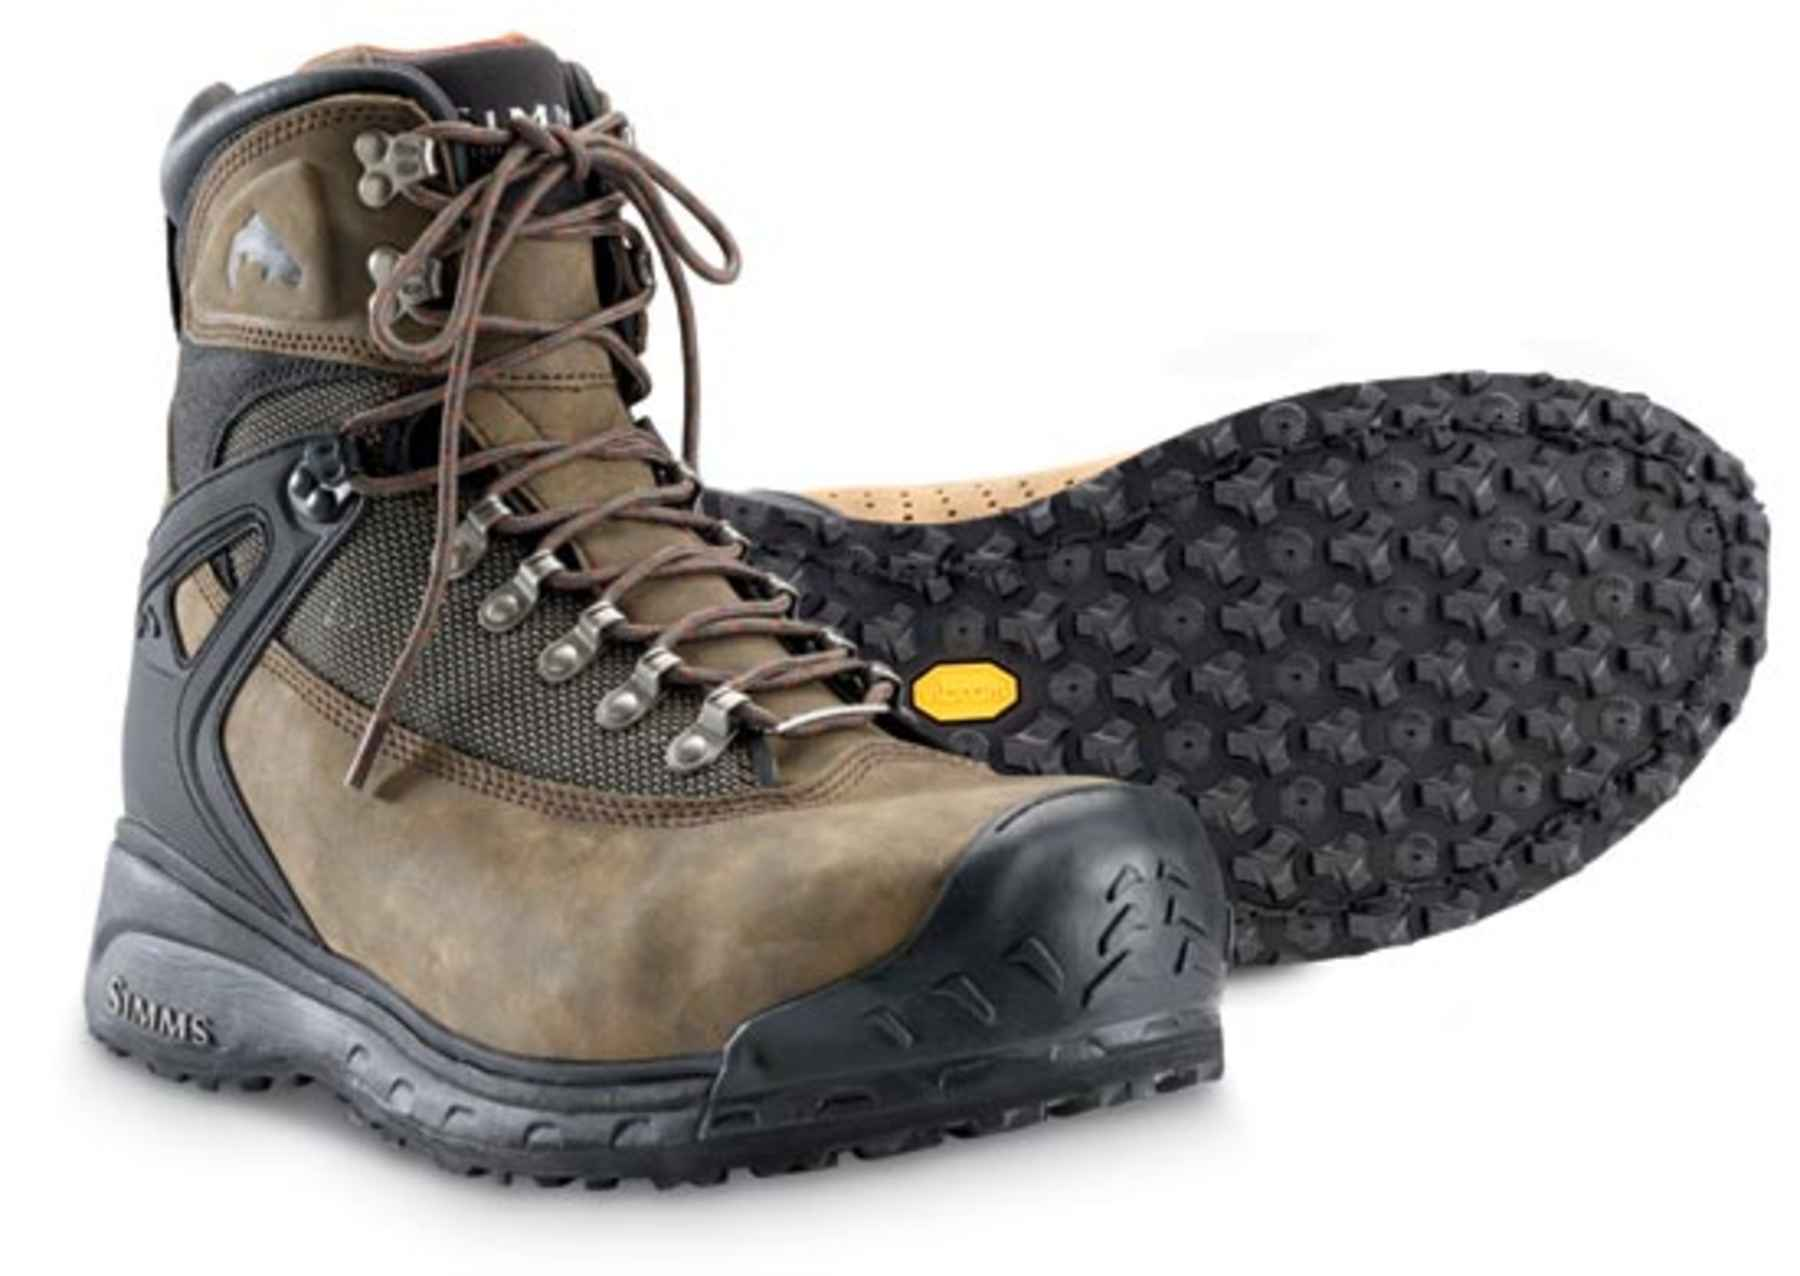 Simms Guide Boot Hatch Magazine Fly Fishing Etc